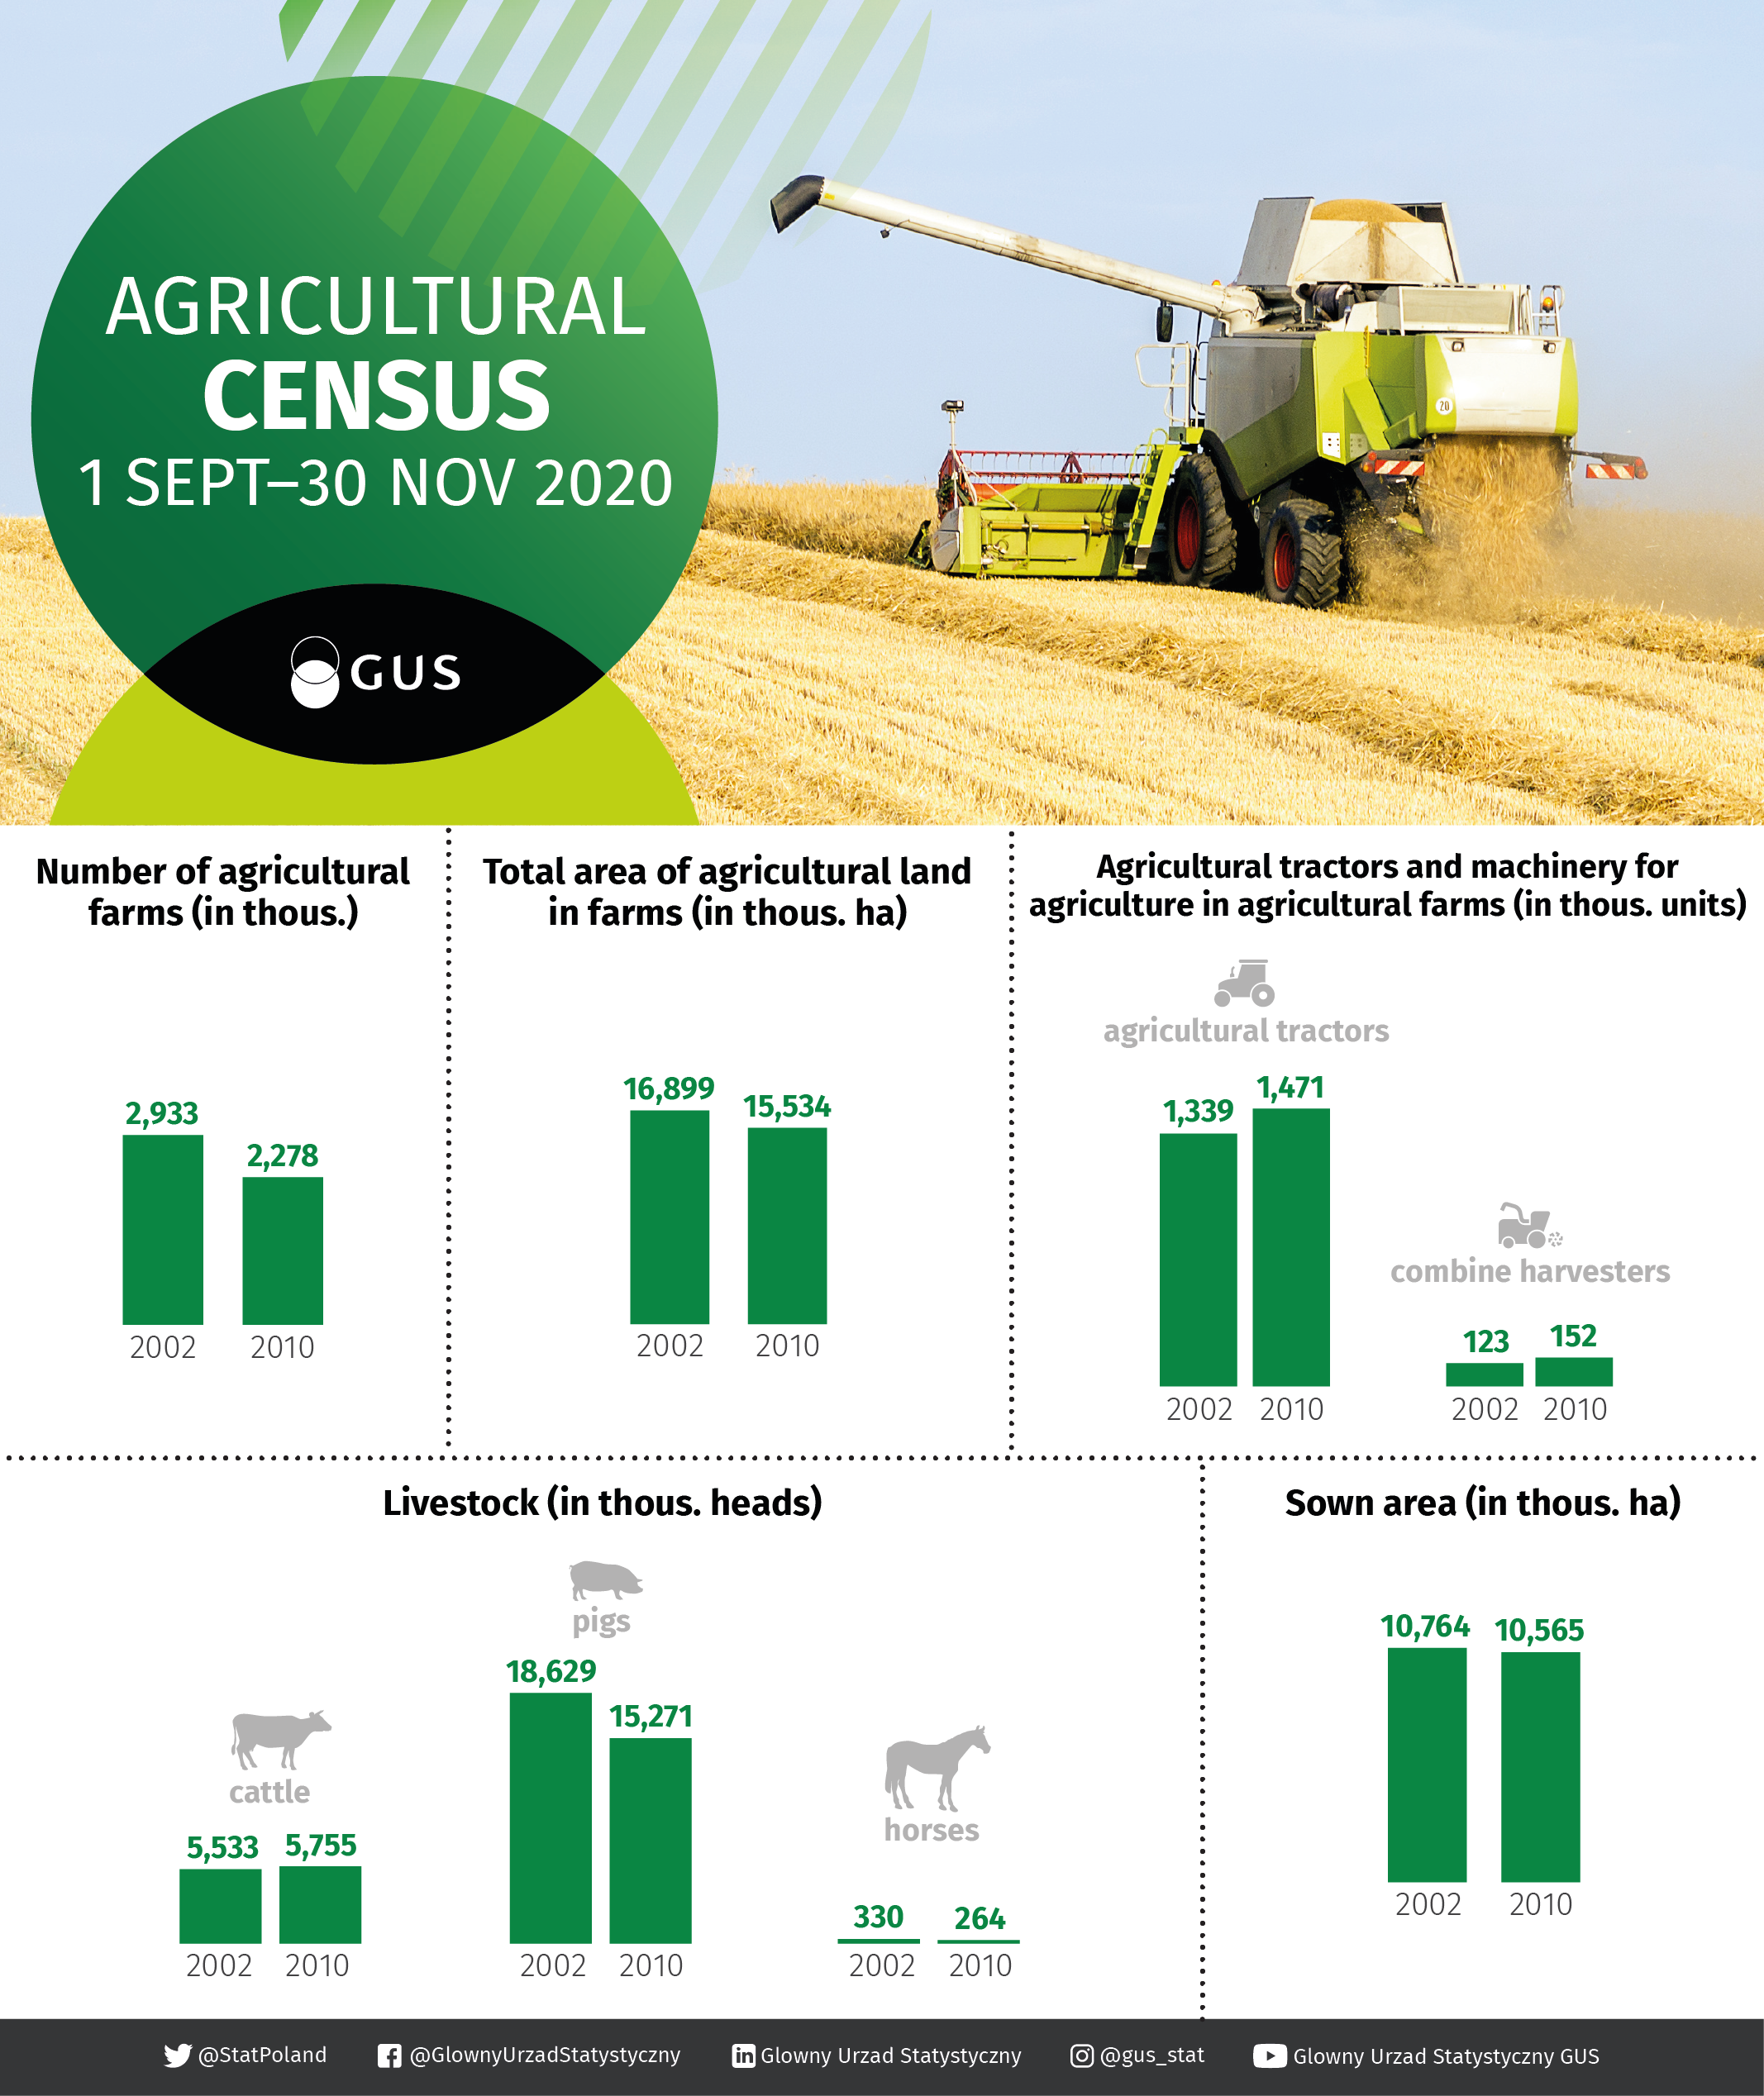 Infographic - Agricultural Census. Data for the infographic can be found in the Excel file attached below